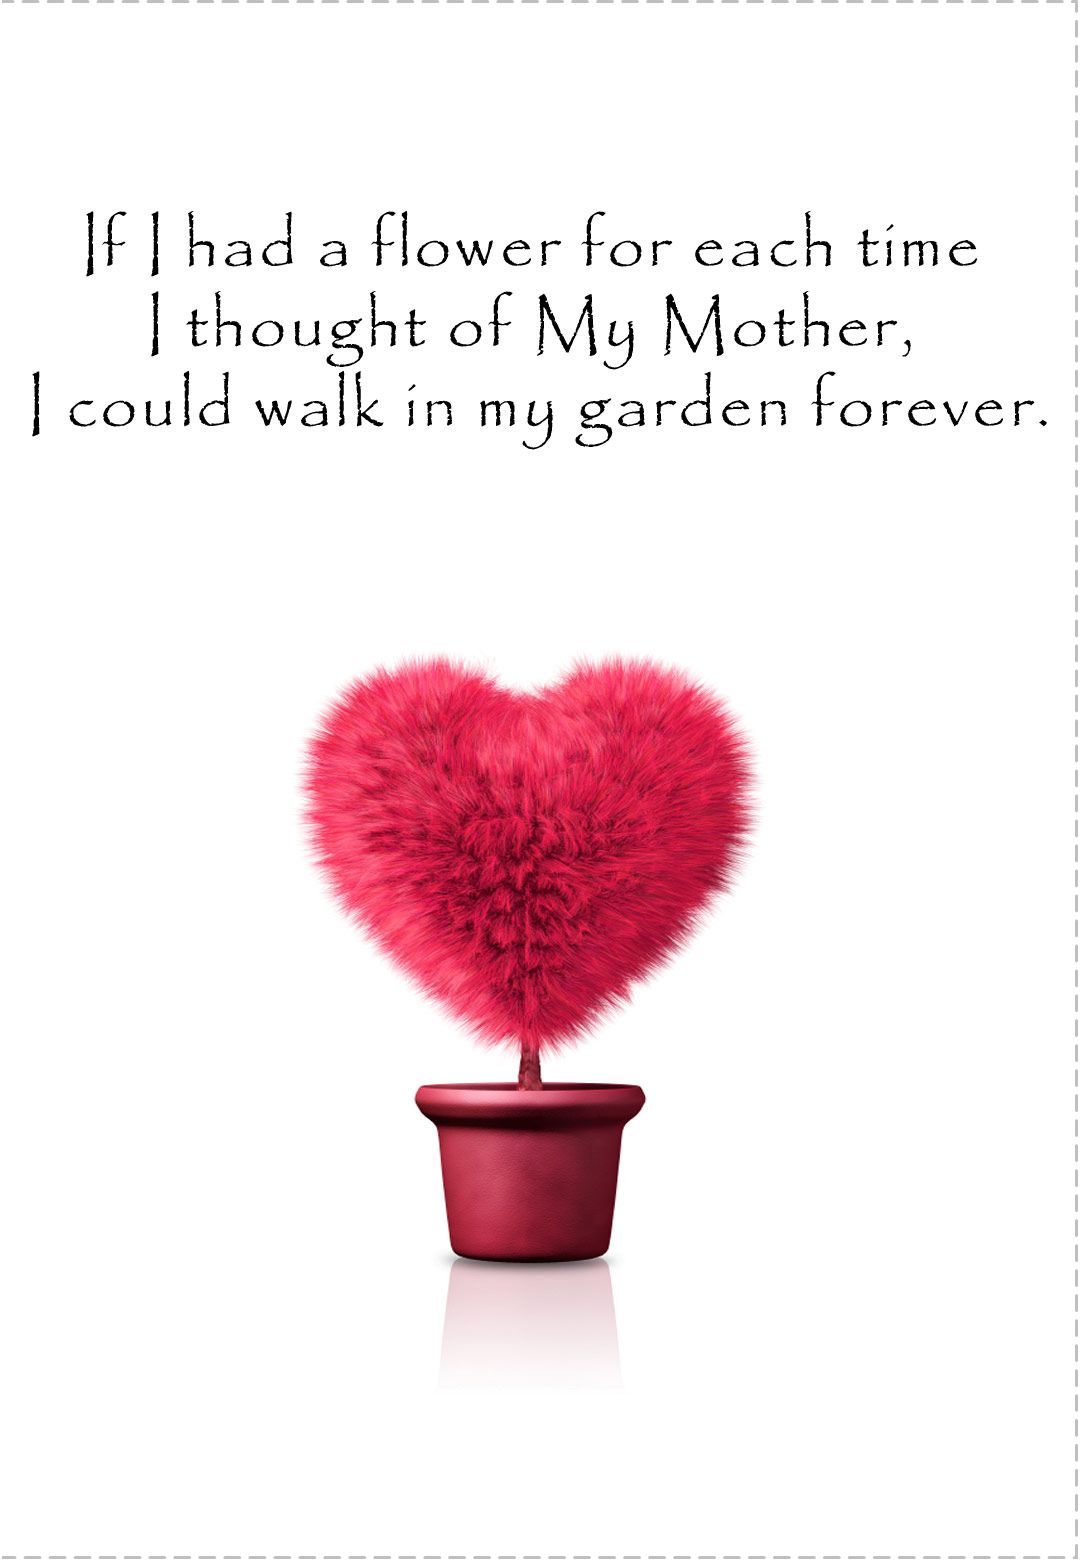 If I had a flower for each time I thought of my mother, I ...